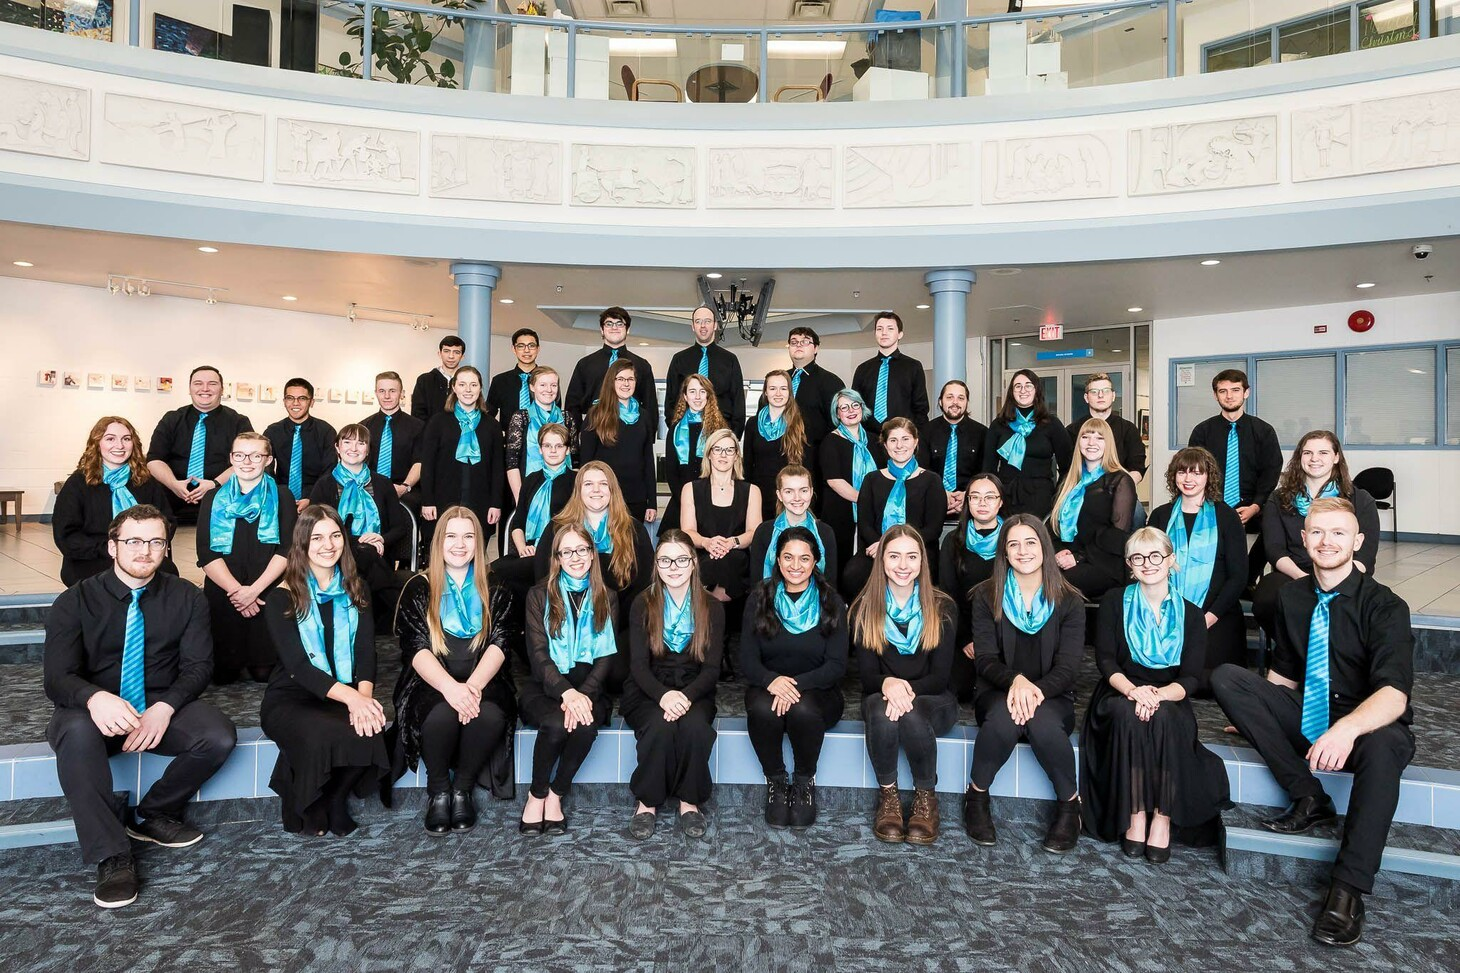 The King's University Concert Choir (Winter 2020), now named King's Cantorum